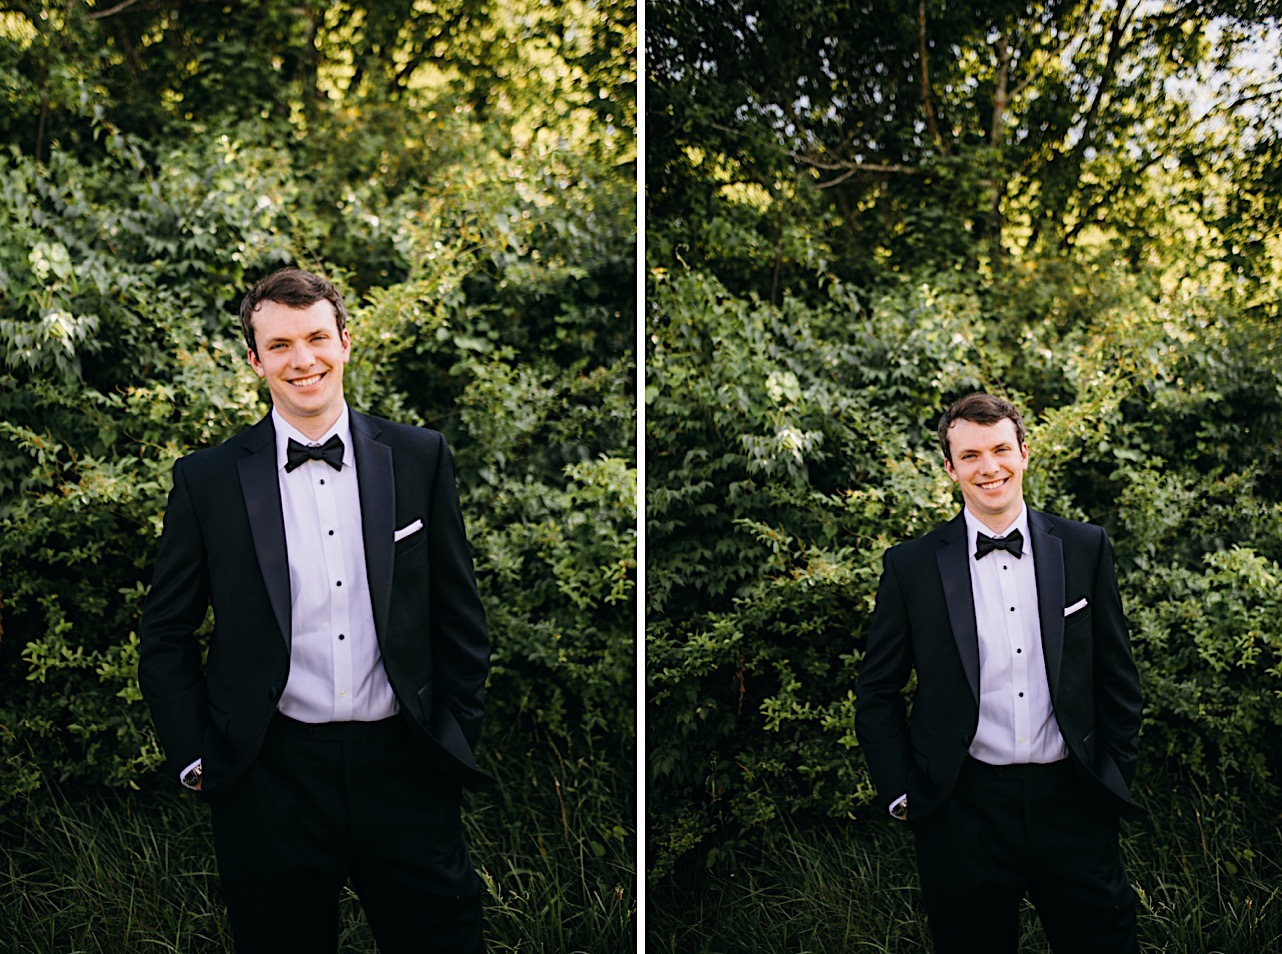 groom in black tuxedo and black bowtie stands in front of green bushes with his hands in his pockets